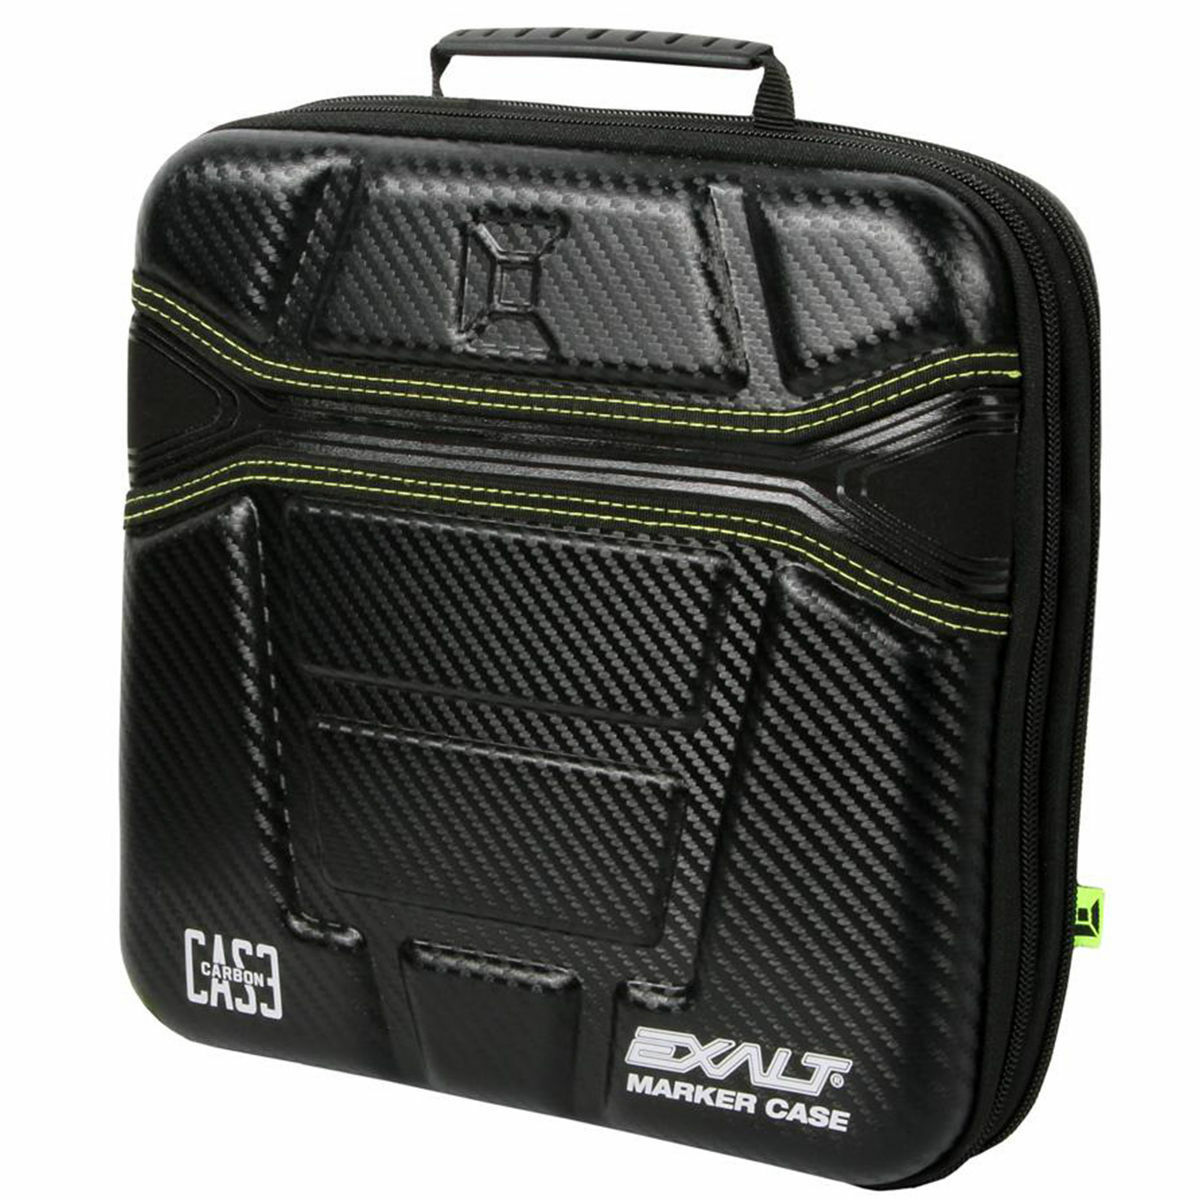 Exalt Carbon Gun Marker Case Universal Case FREE SHIPPING IN THE USA